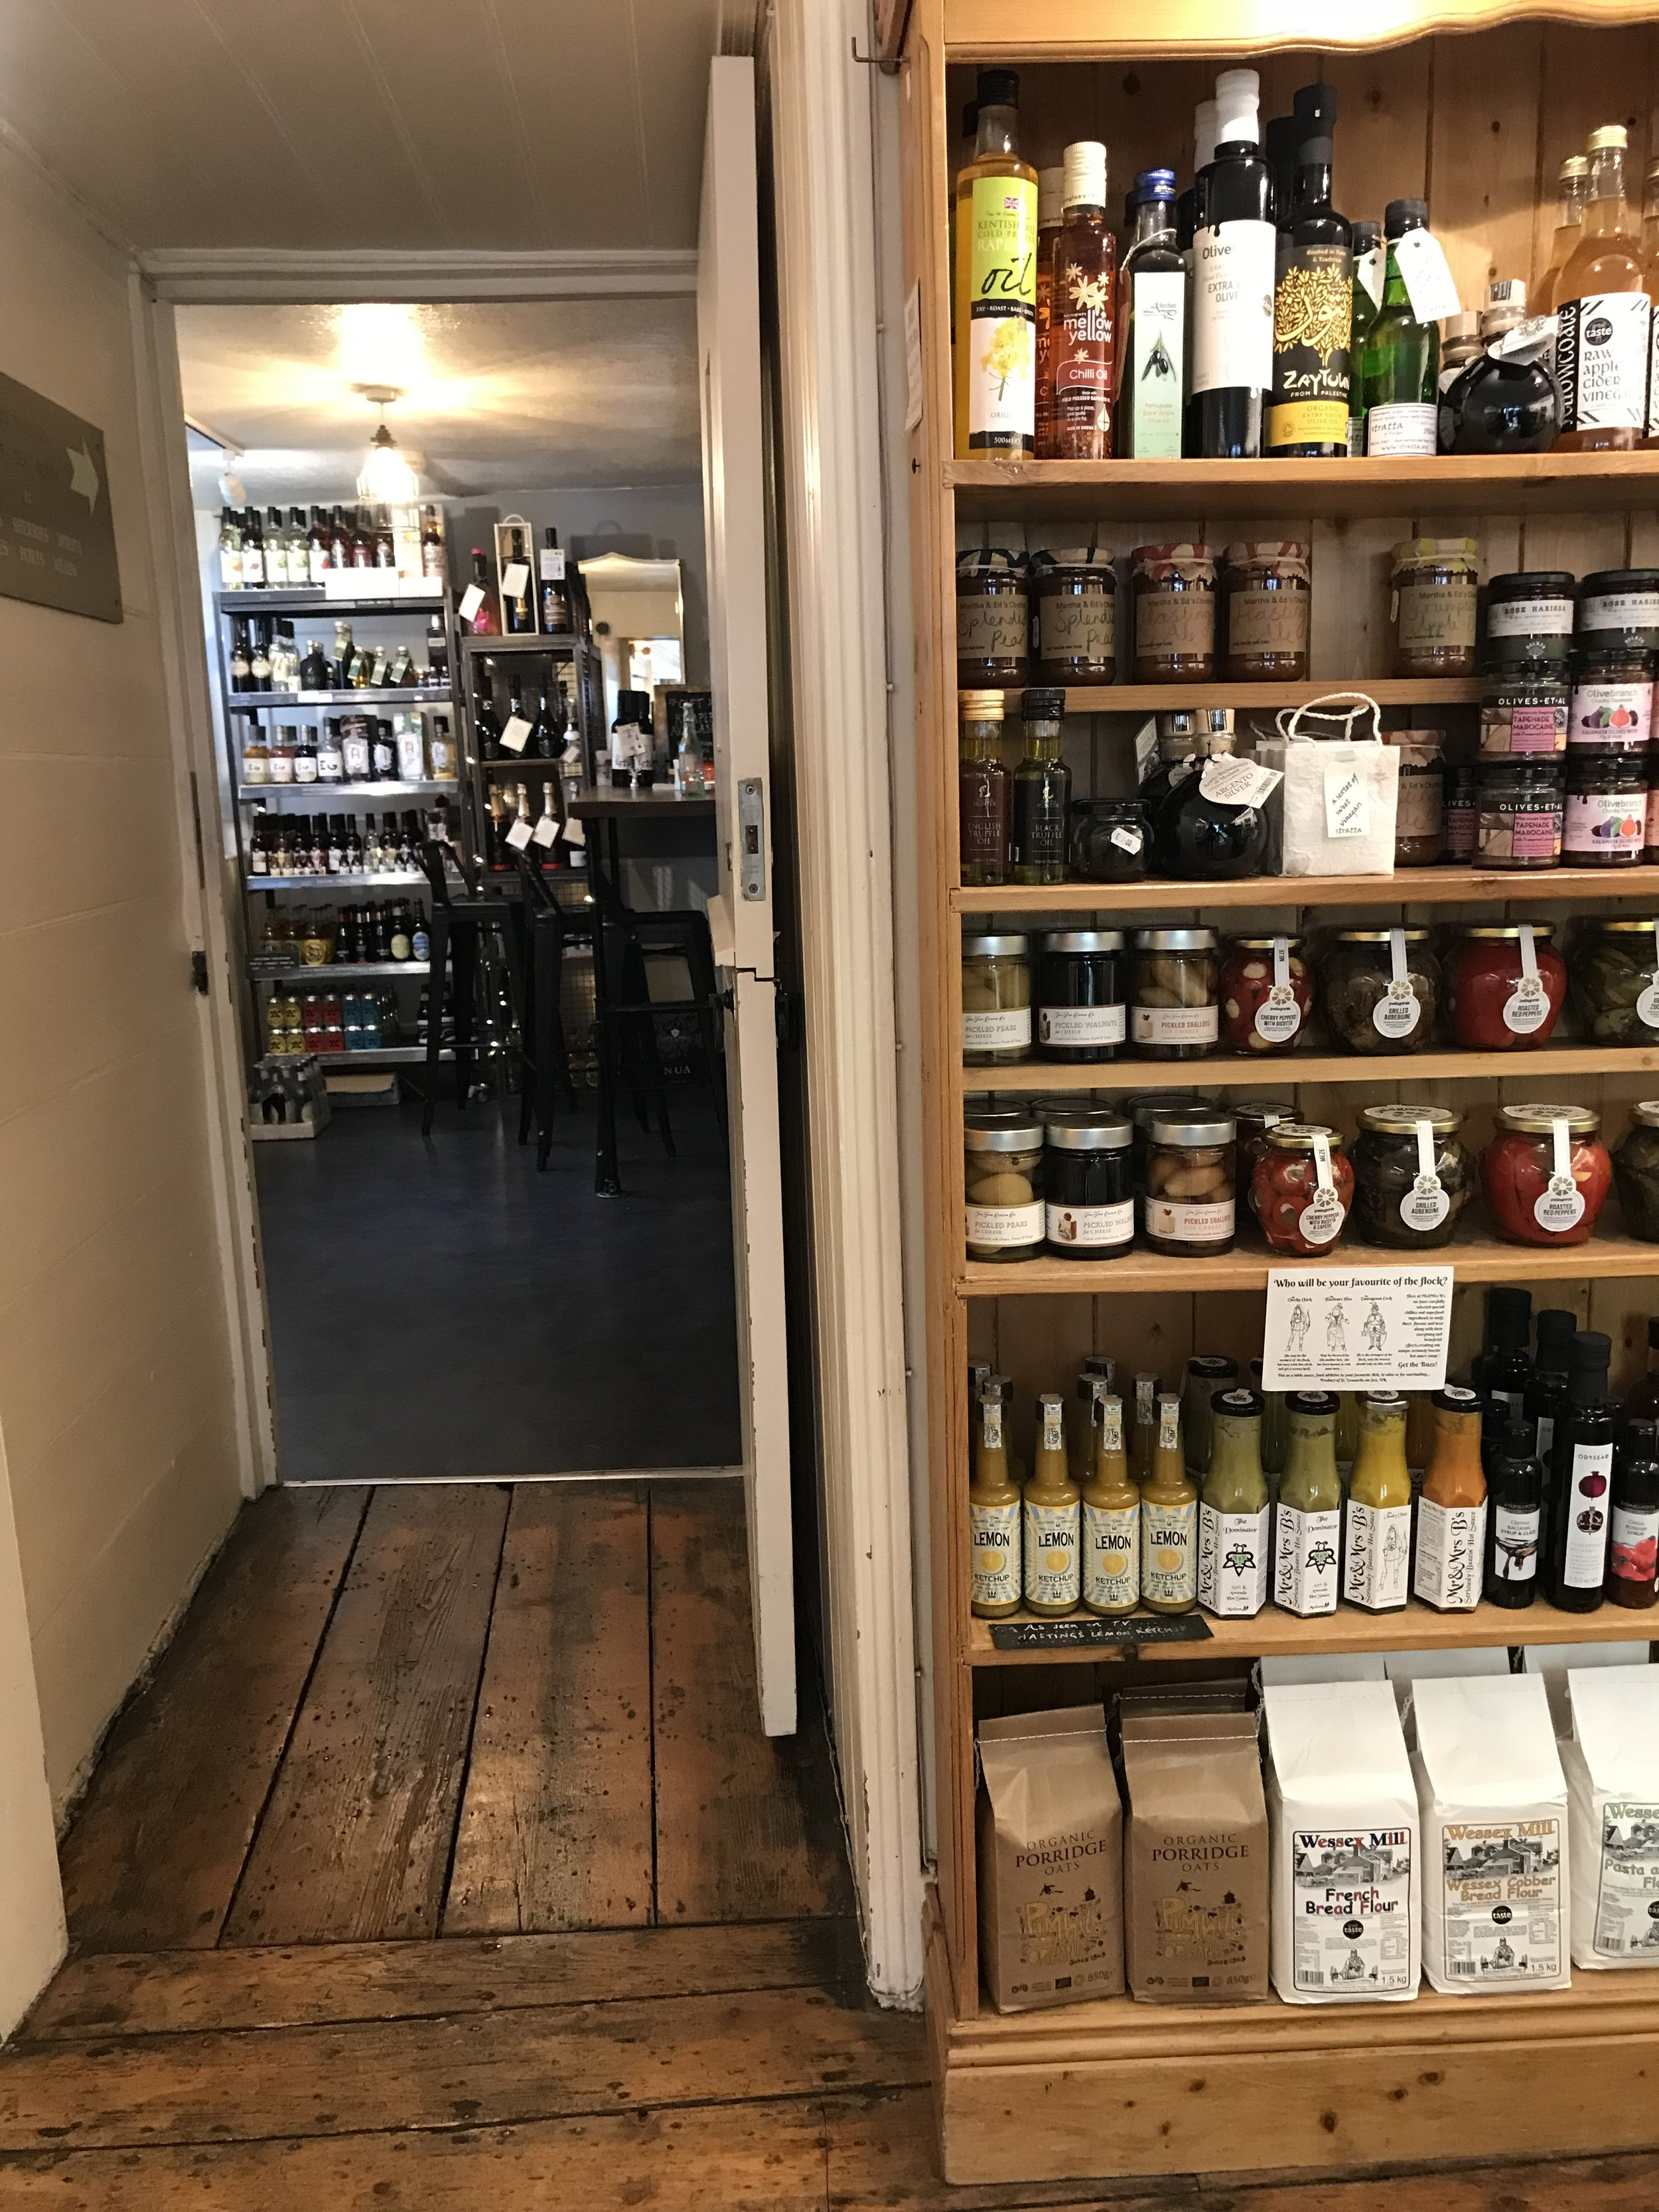 A tea room and delicatessen selling local produce